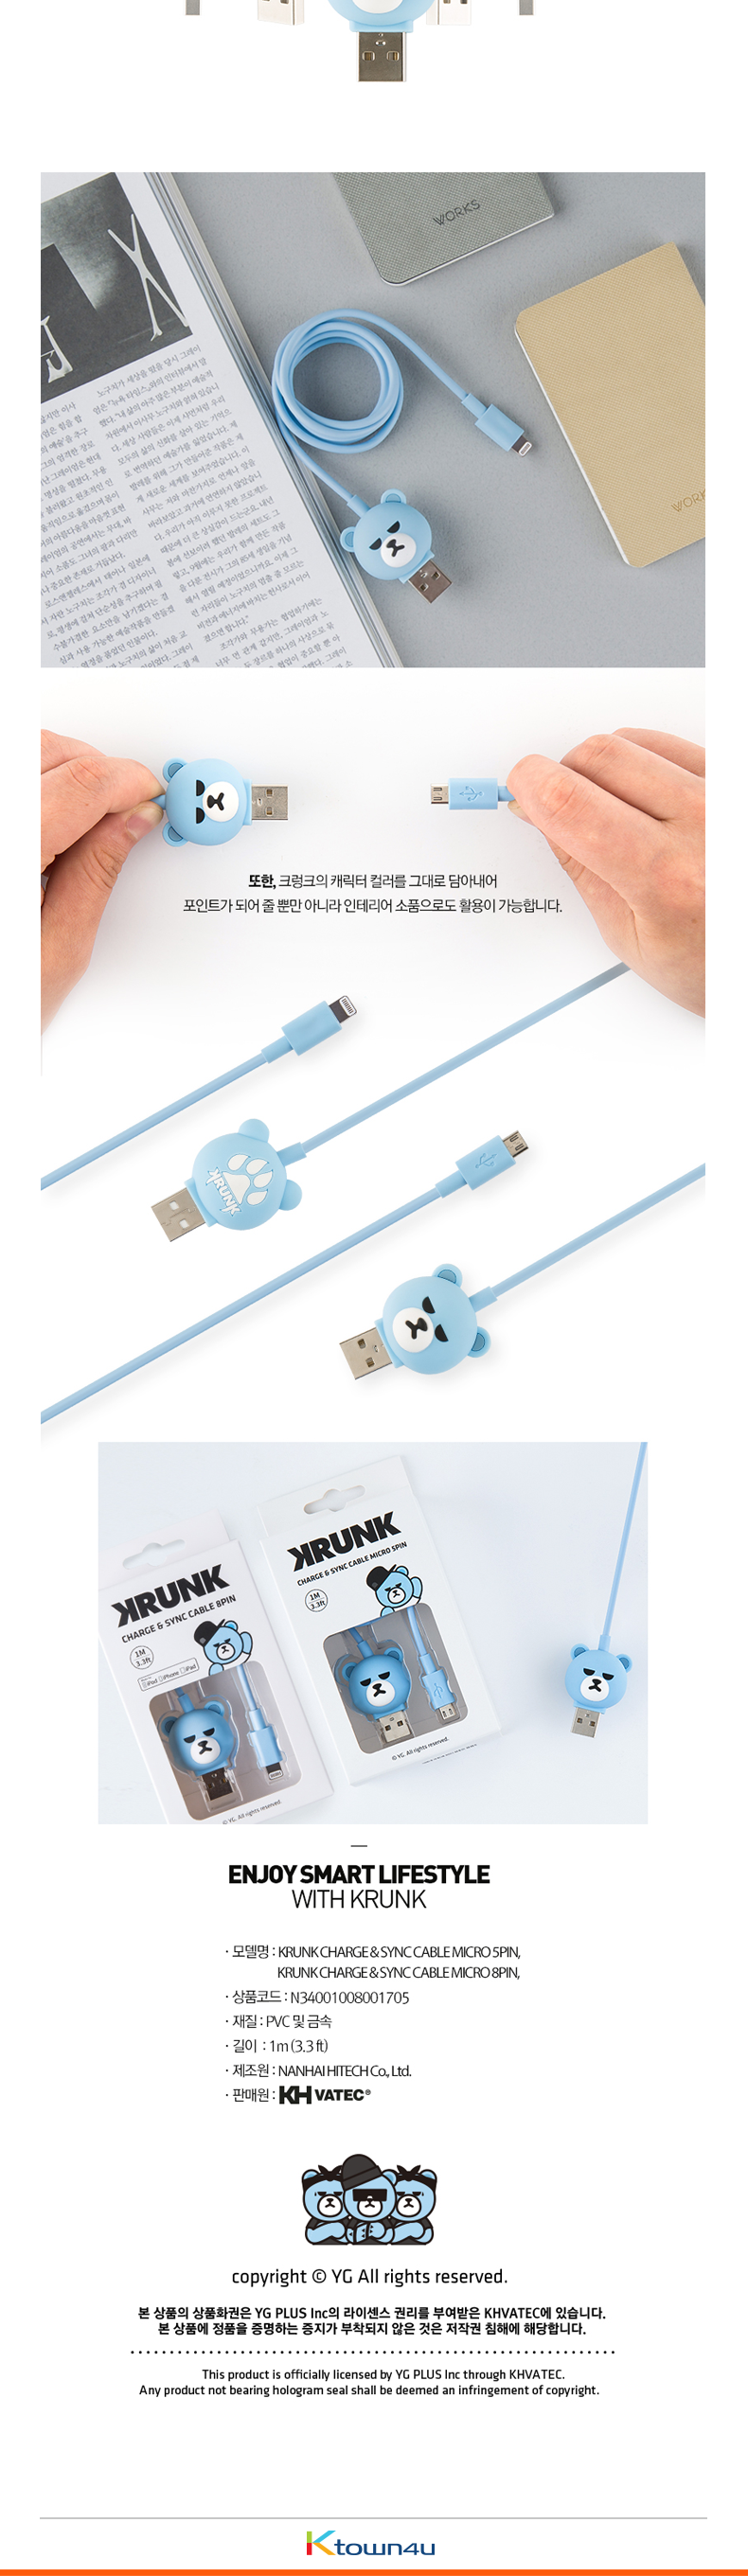 [KHVATEC] KRUNK 5PIN CABLE (Android)